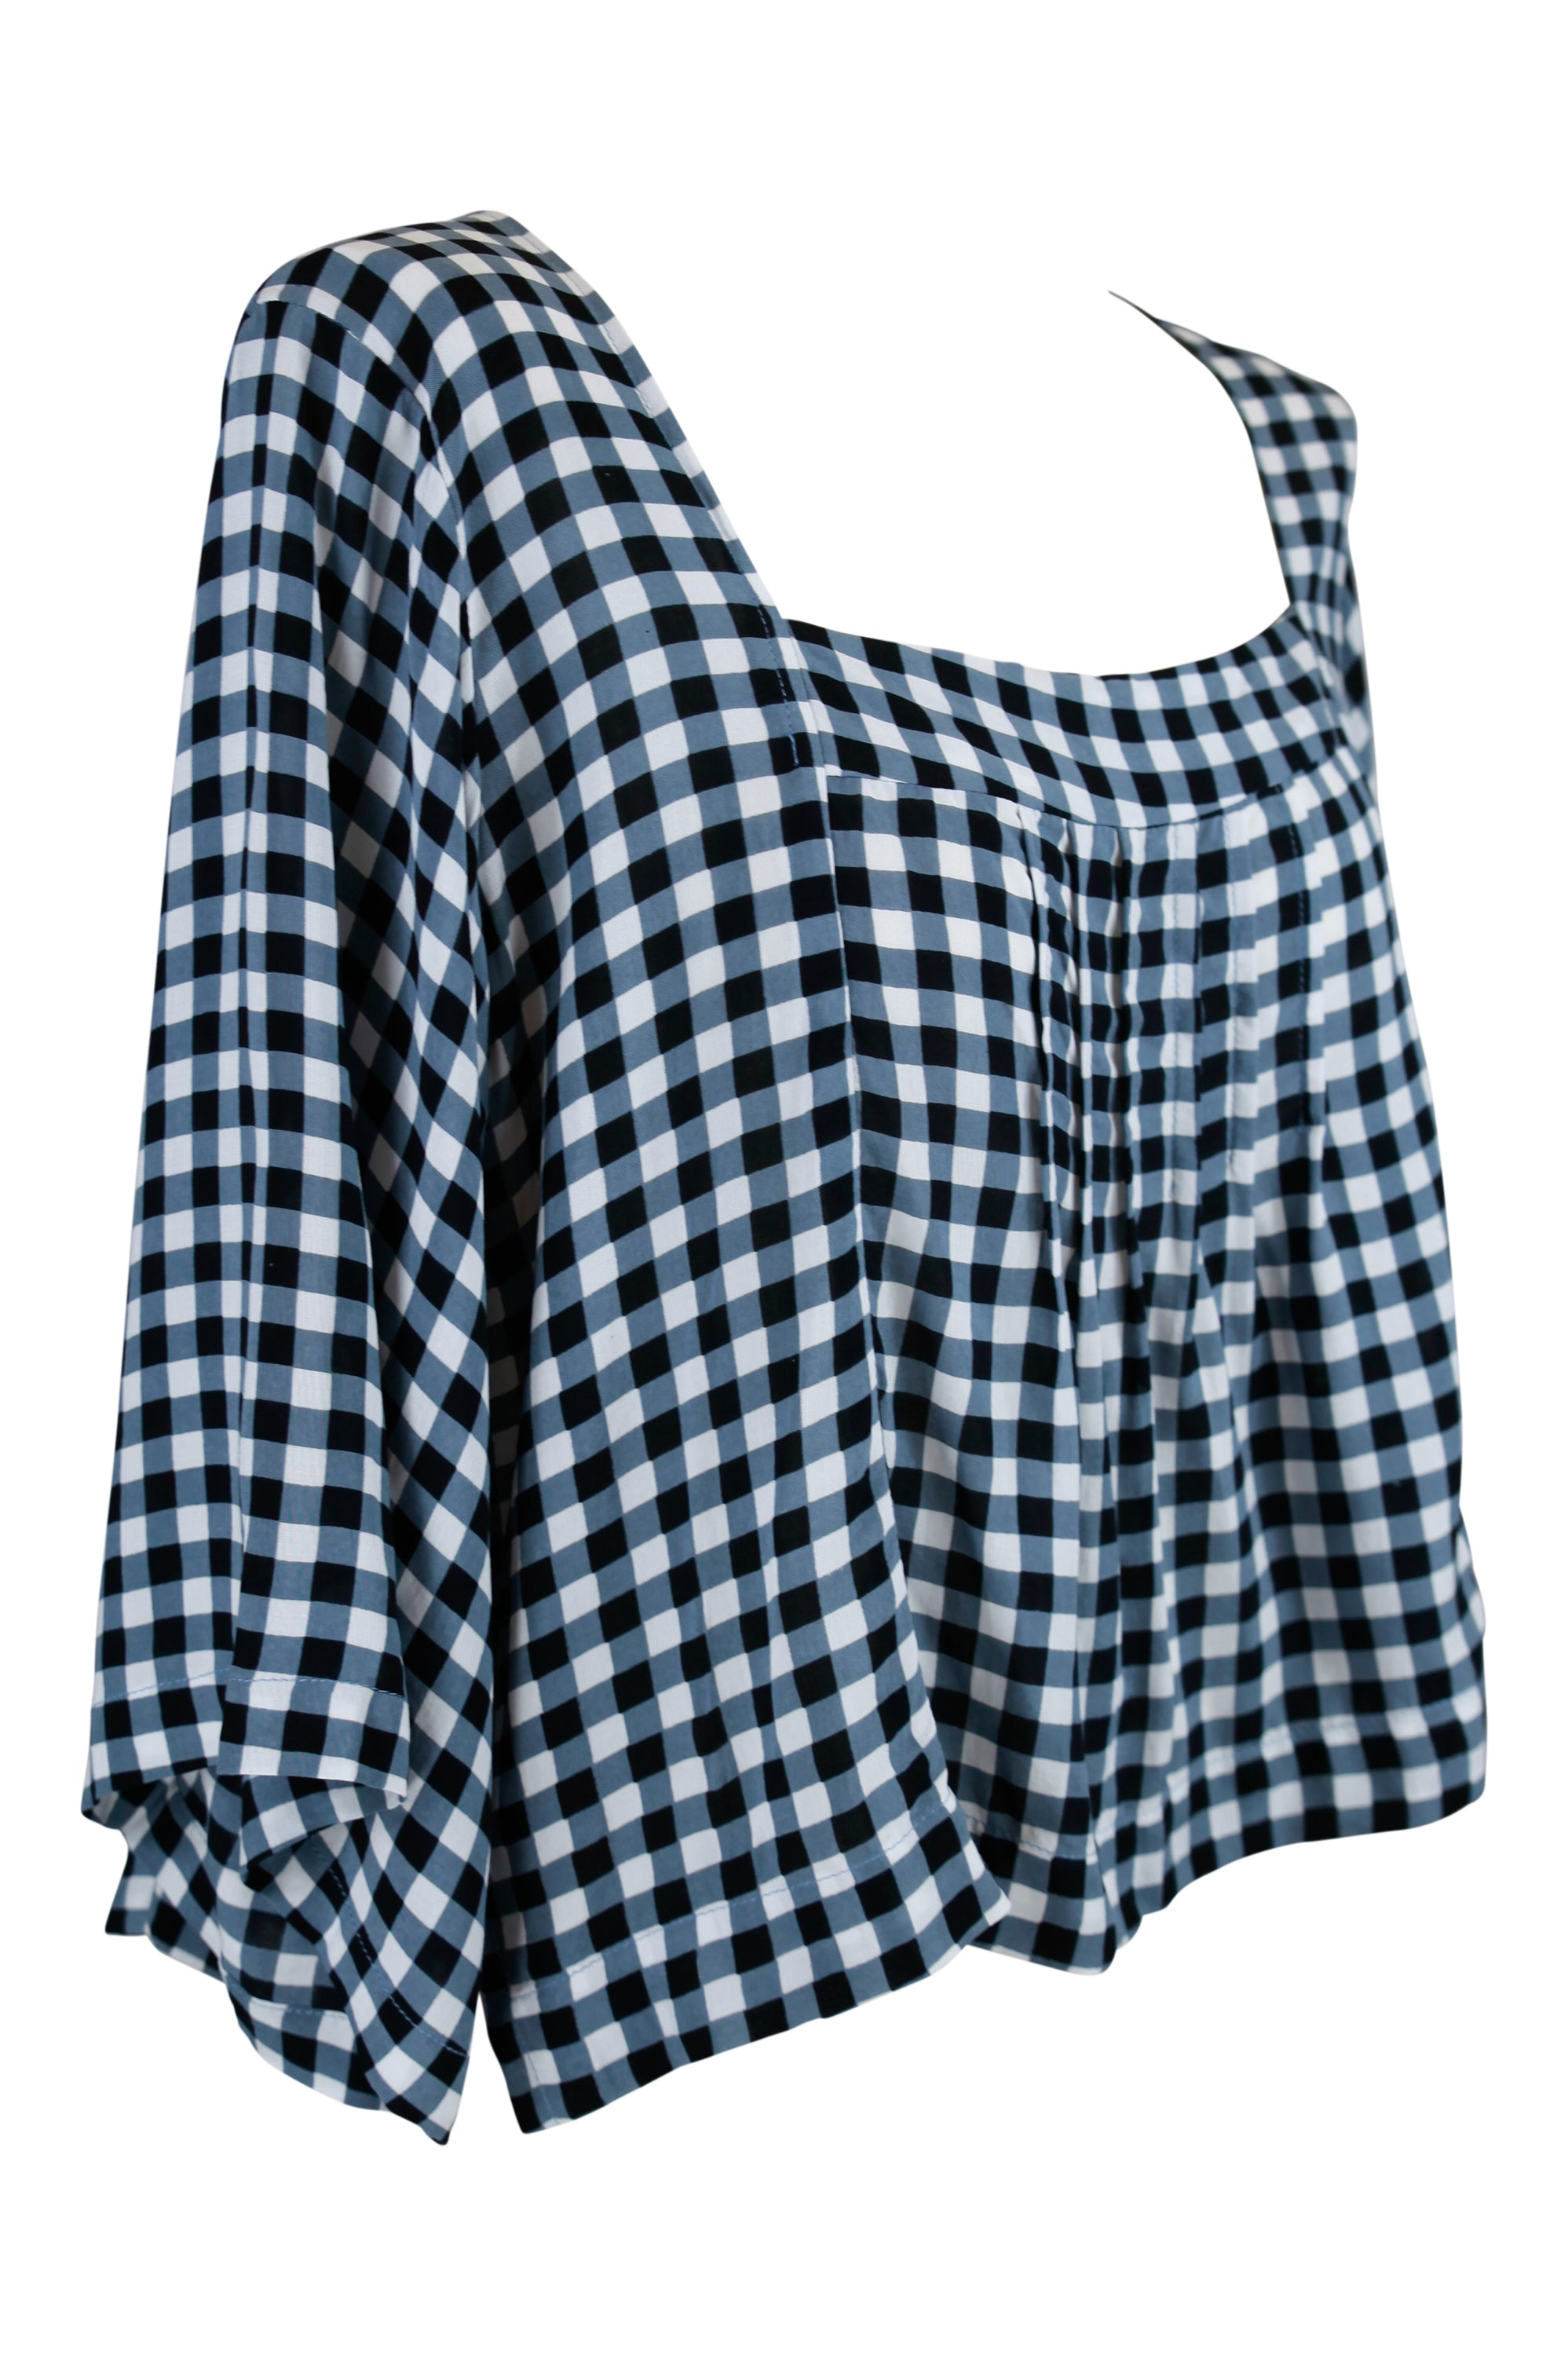 Lotus Flower Top - Gingham Pre-Order - Saffron Road